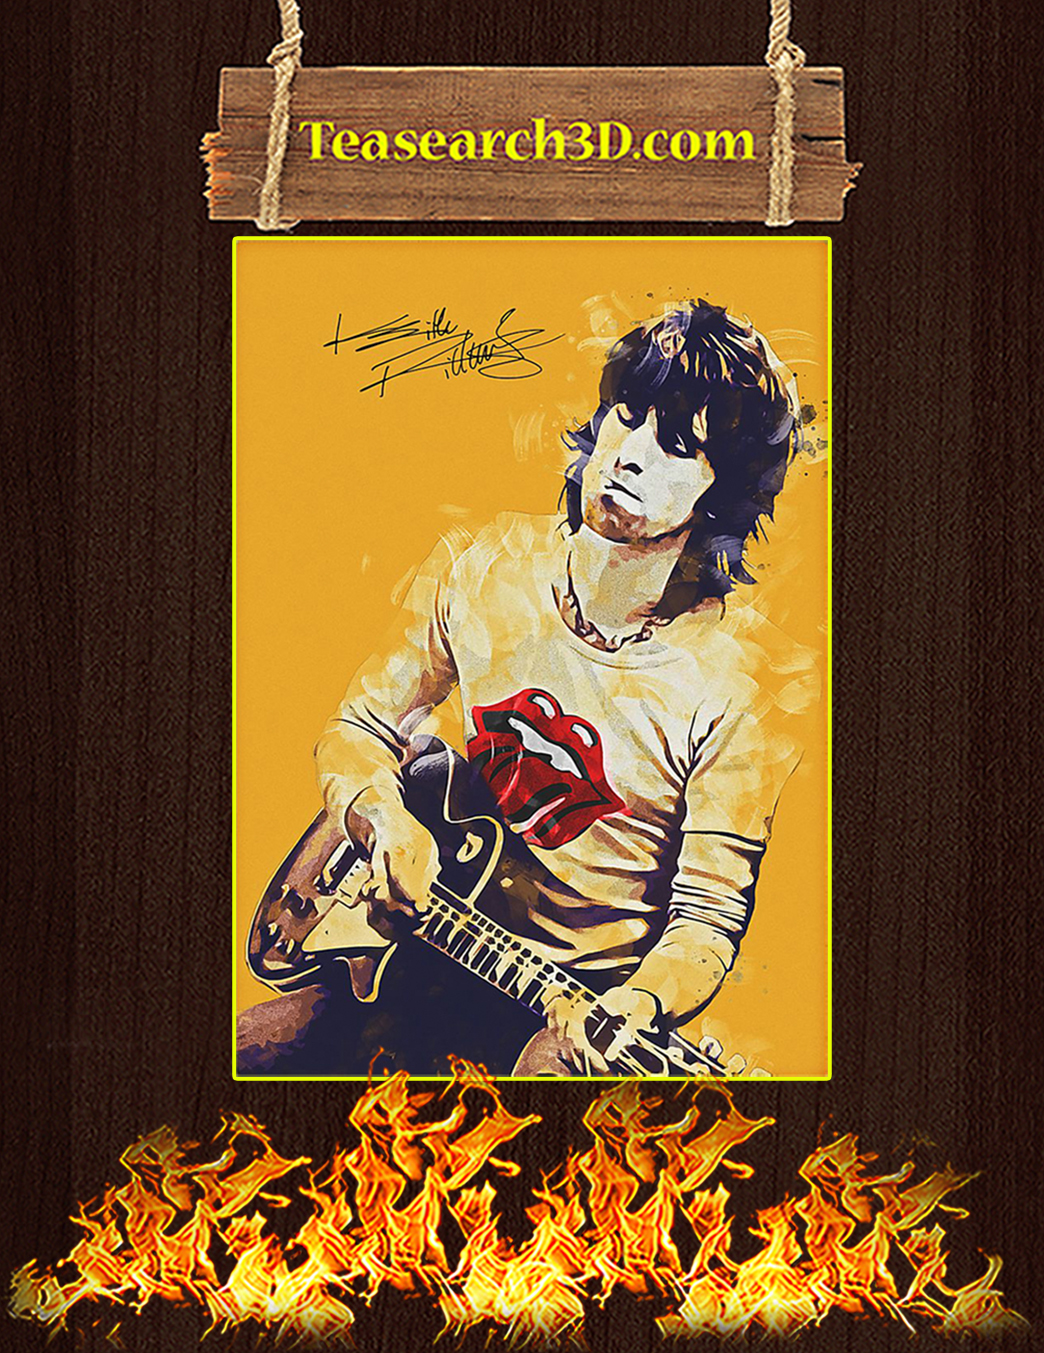 Legend keith richards signature poster A1